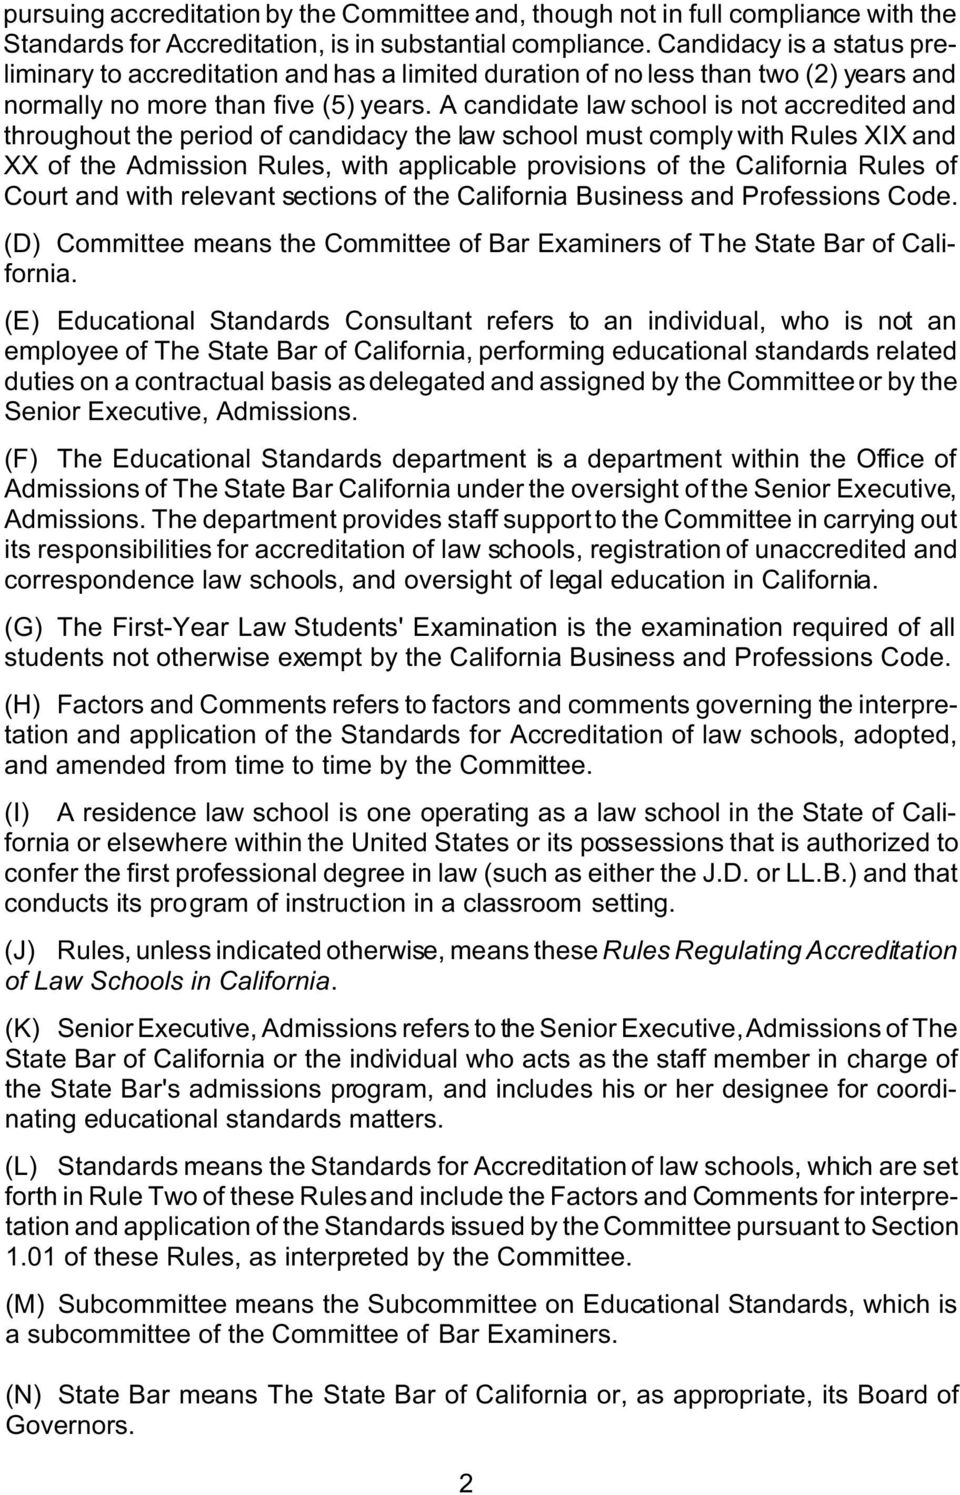 A candidate law school is not accredited and throughout the period of candidacy the law school must comply with Rules XIX and XX of the Admission Rules, with applicable provisions of the California